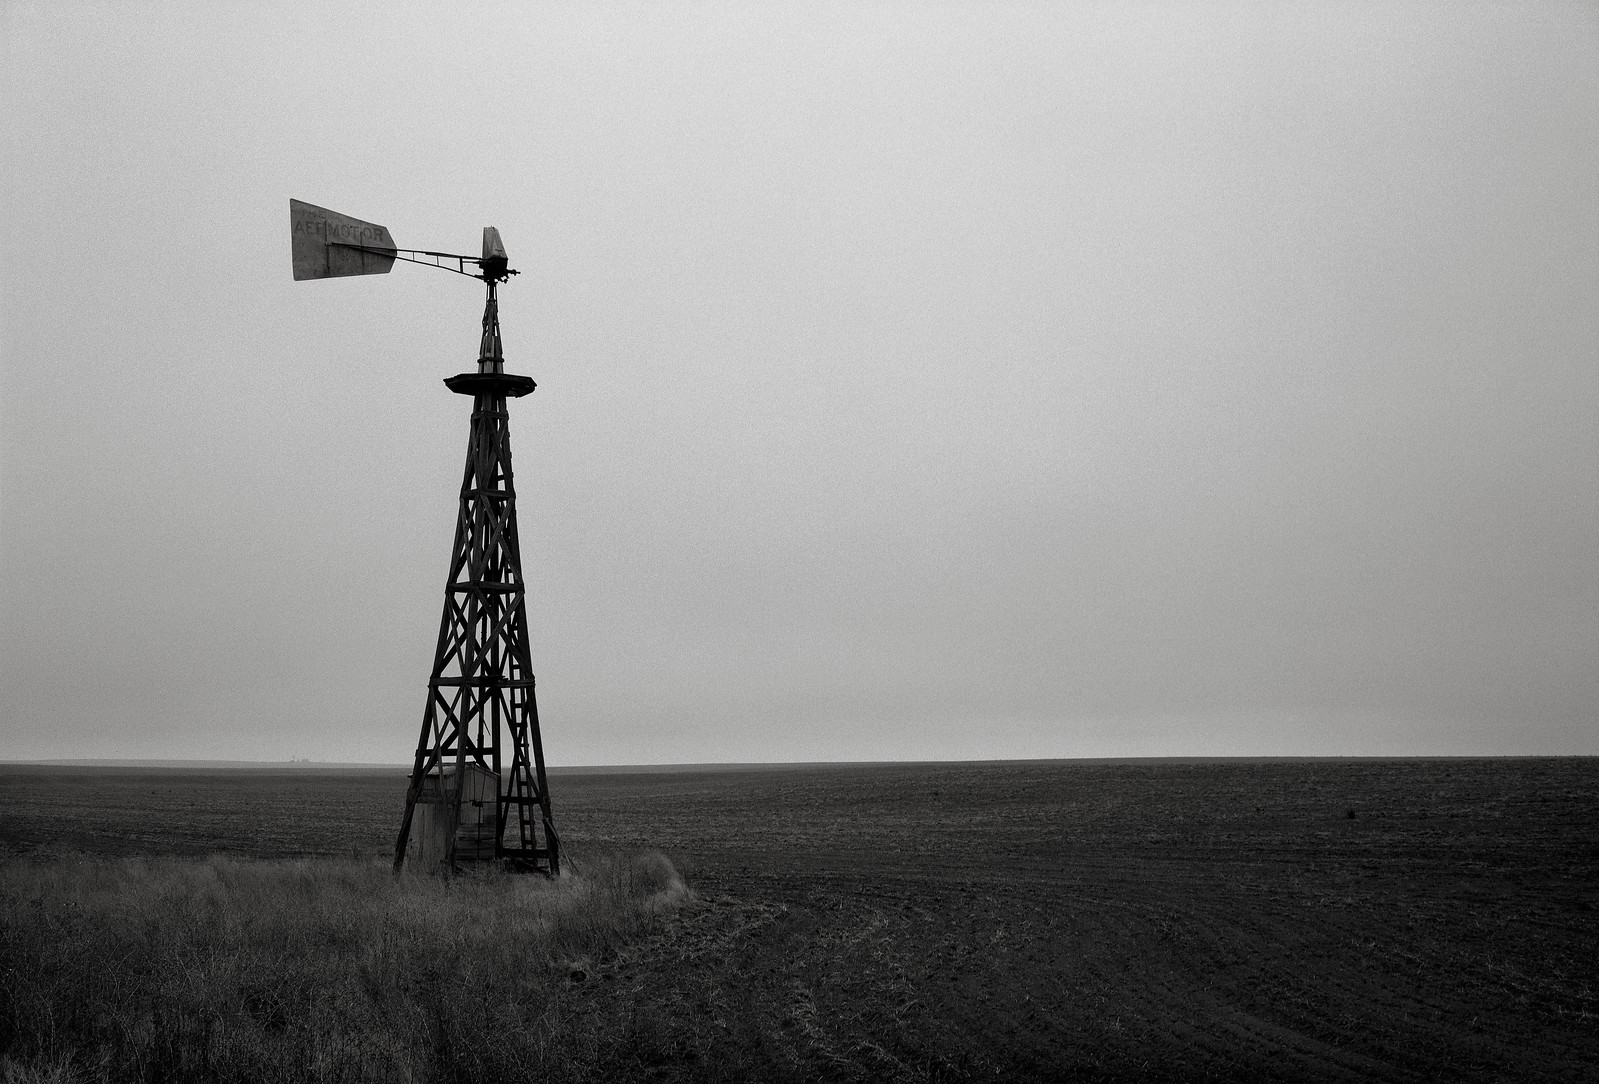 Broken Windmill, Eastern Oregon | by austin granger